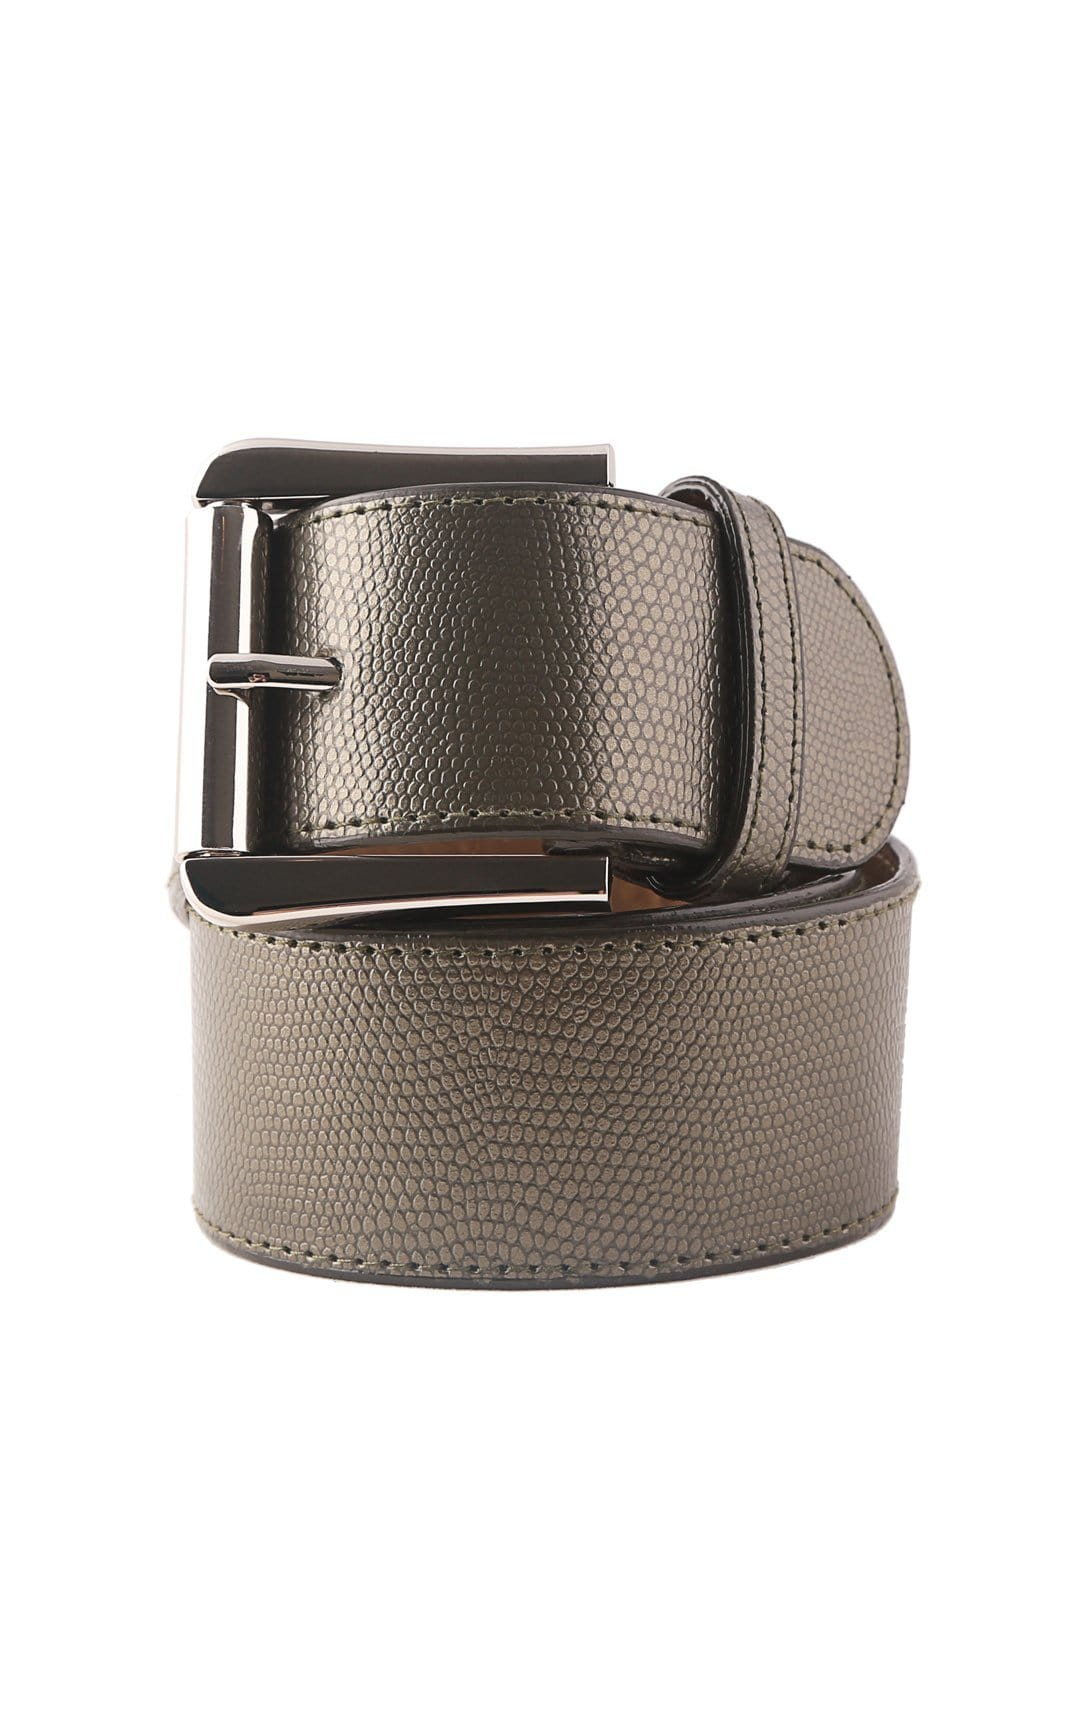 GhoDho Belt Small Cruelty Free GhoDho Belt - Olive equestrian team apparel online tack store mobile tack store custom farm apparel custom show stable clothing equestrian lifestyle horse show clothing riding clothes horses equestrian tack store